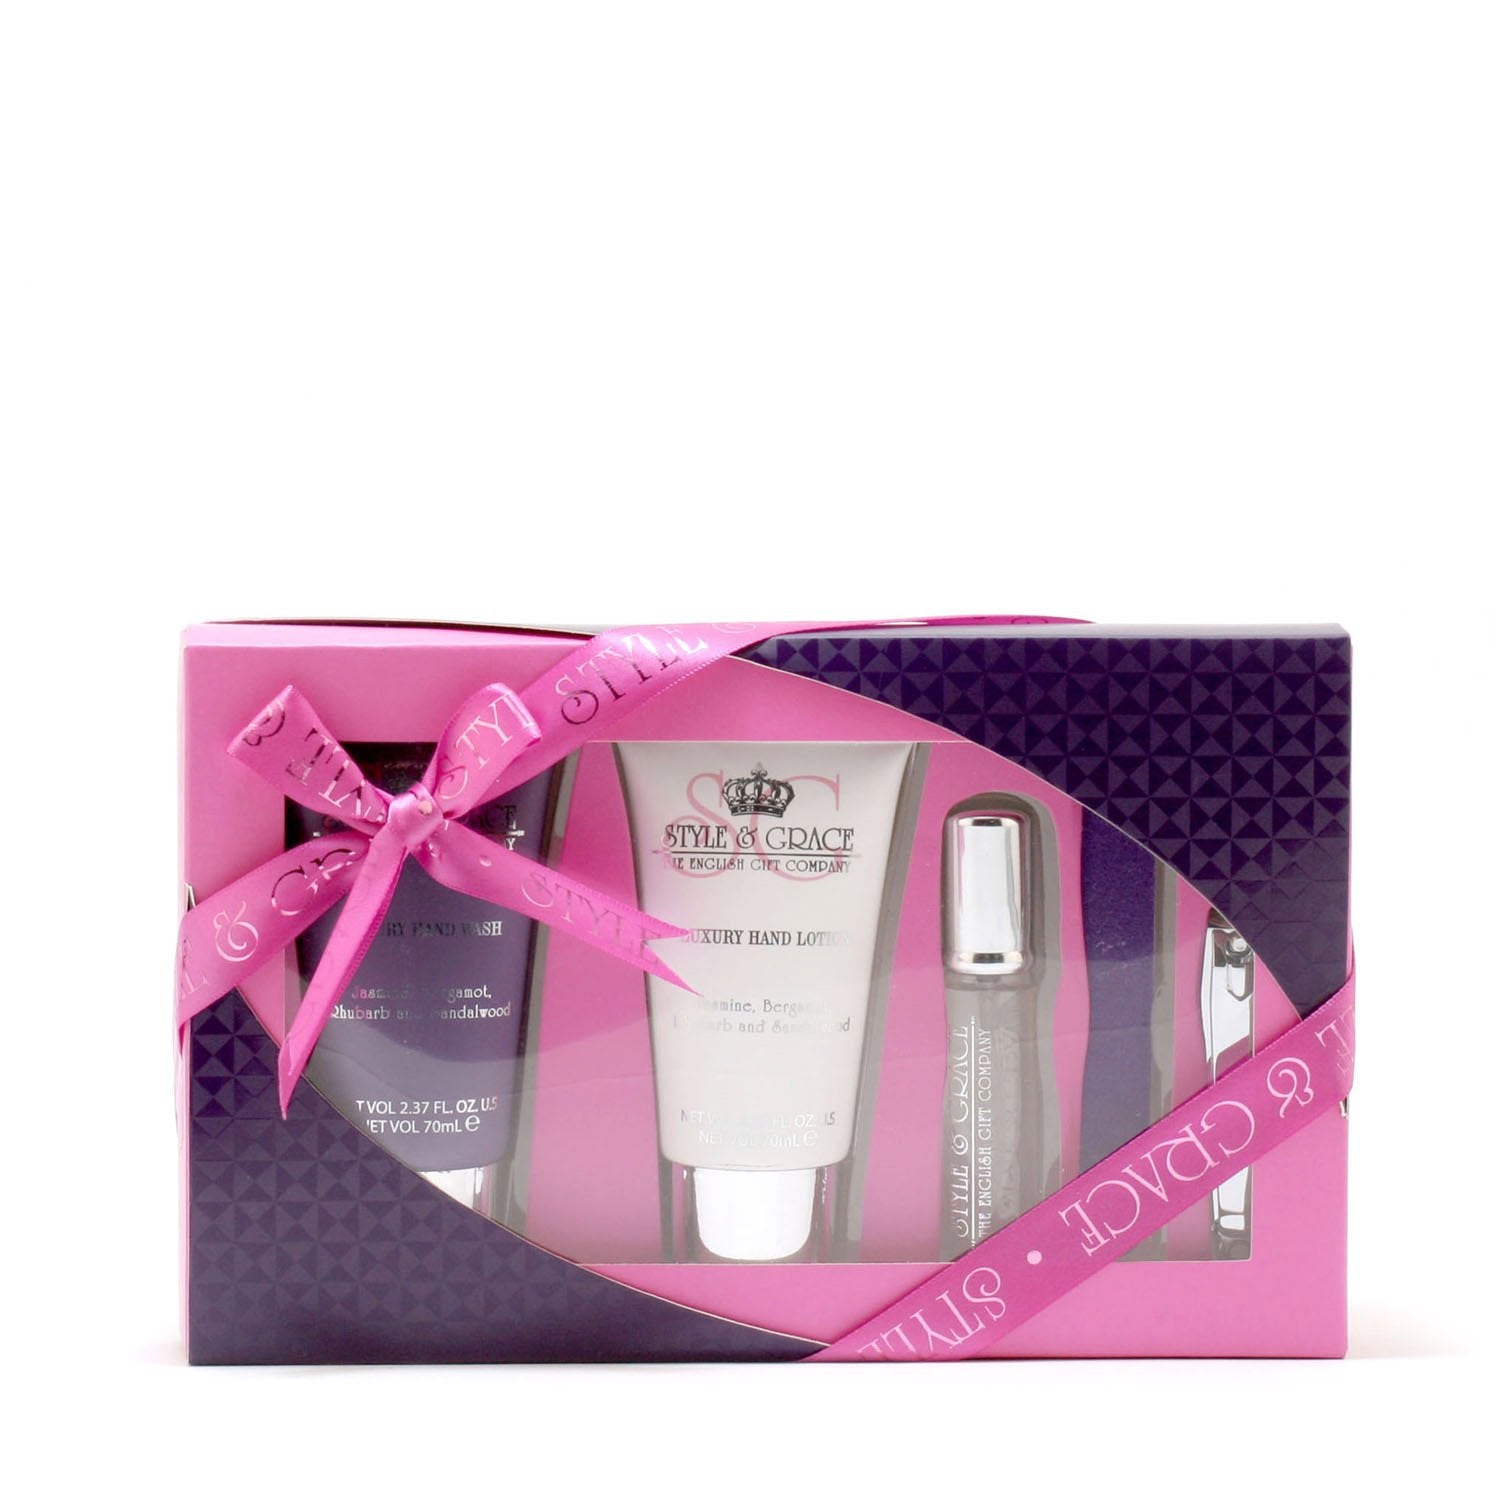 Style Grace Signature Collection Pamper Kit Gift Set Fragrance Room